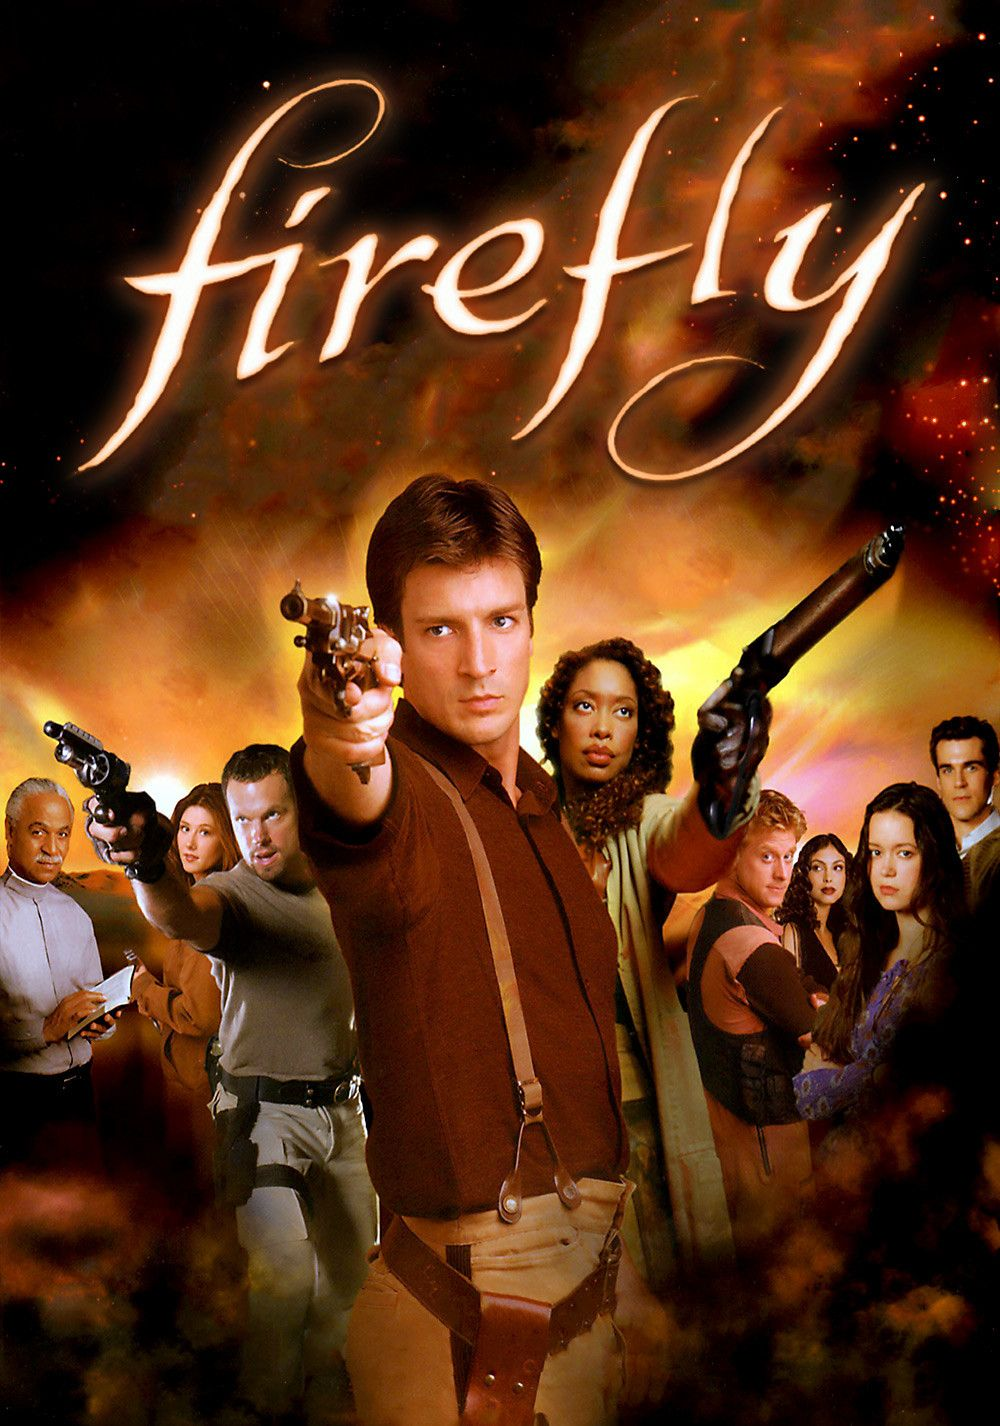 TV Show or Movie Poster of the Week #Firefly | I reject your reality